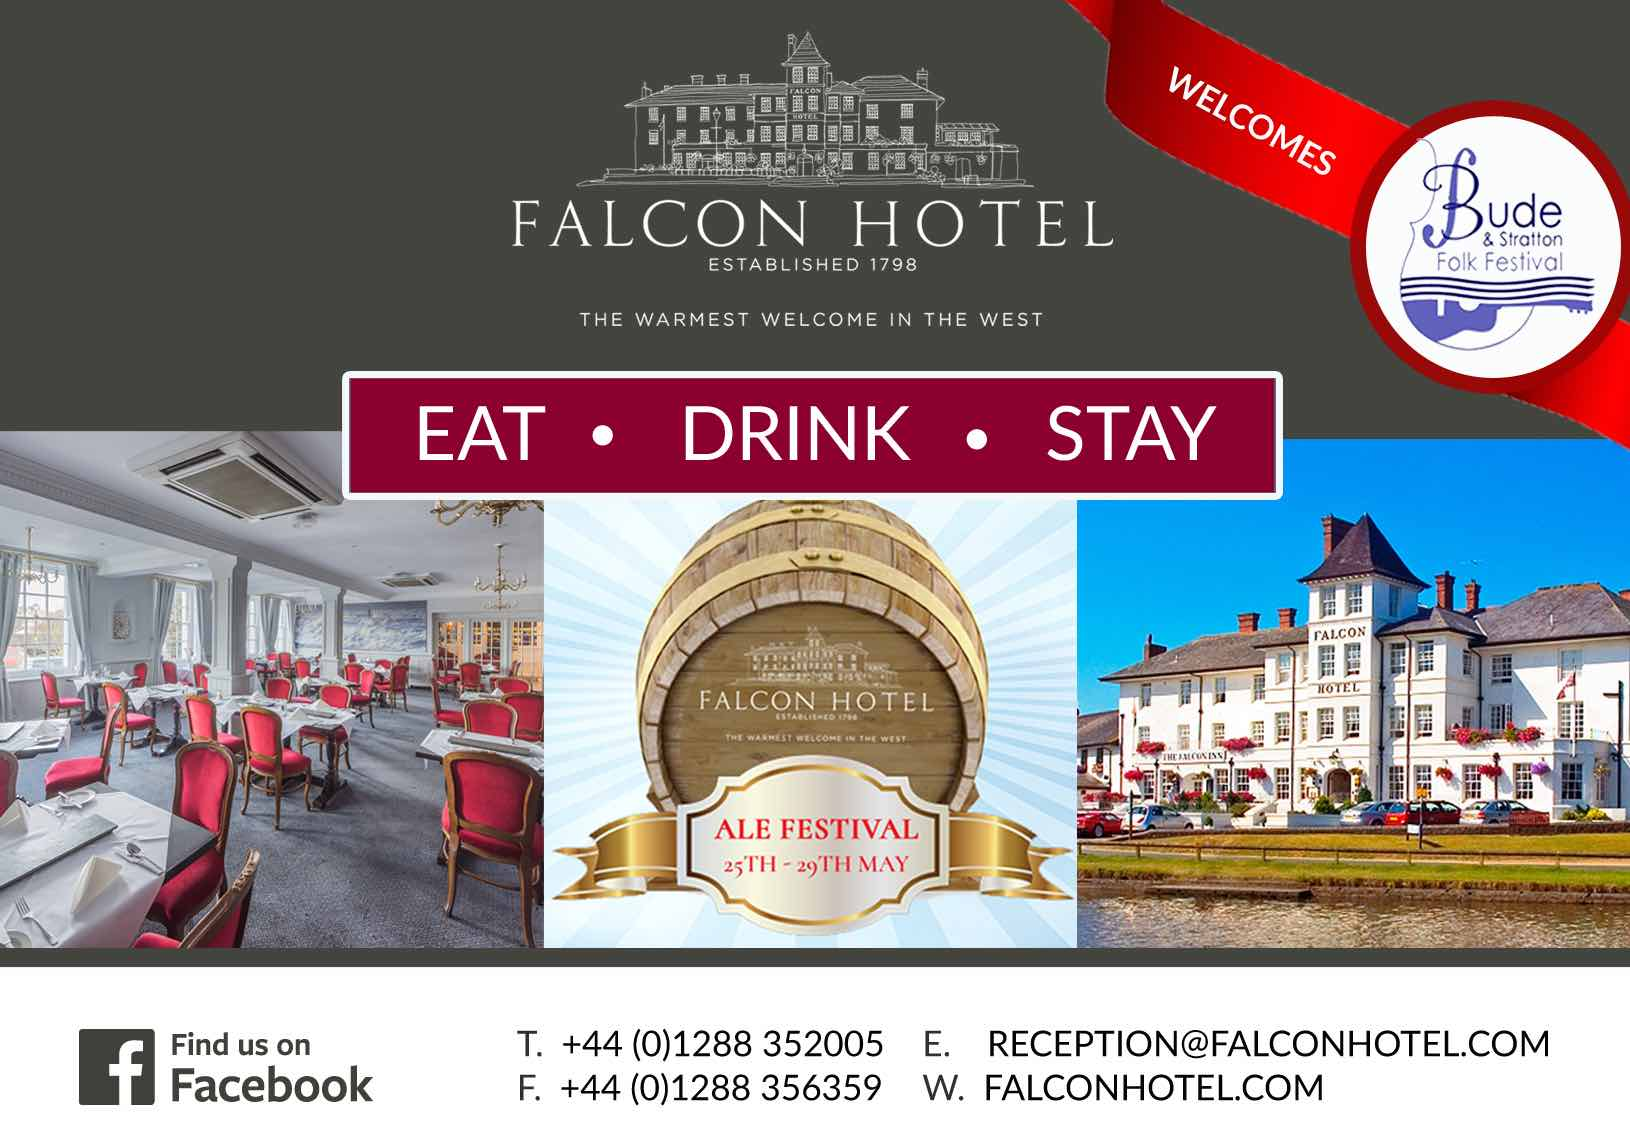 Ad for The Facon Hotel, Bude